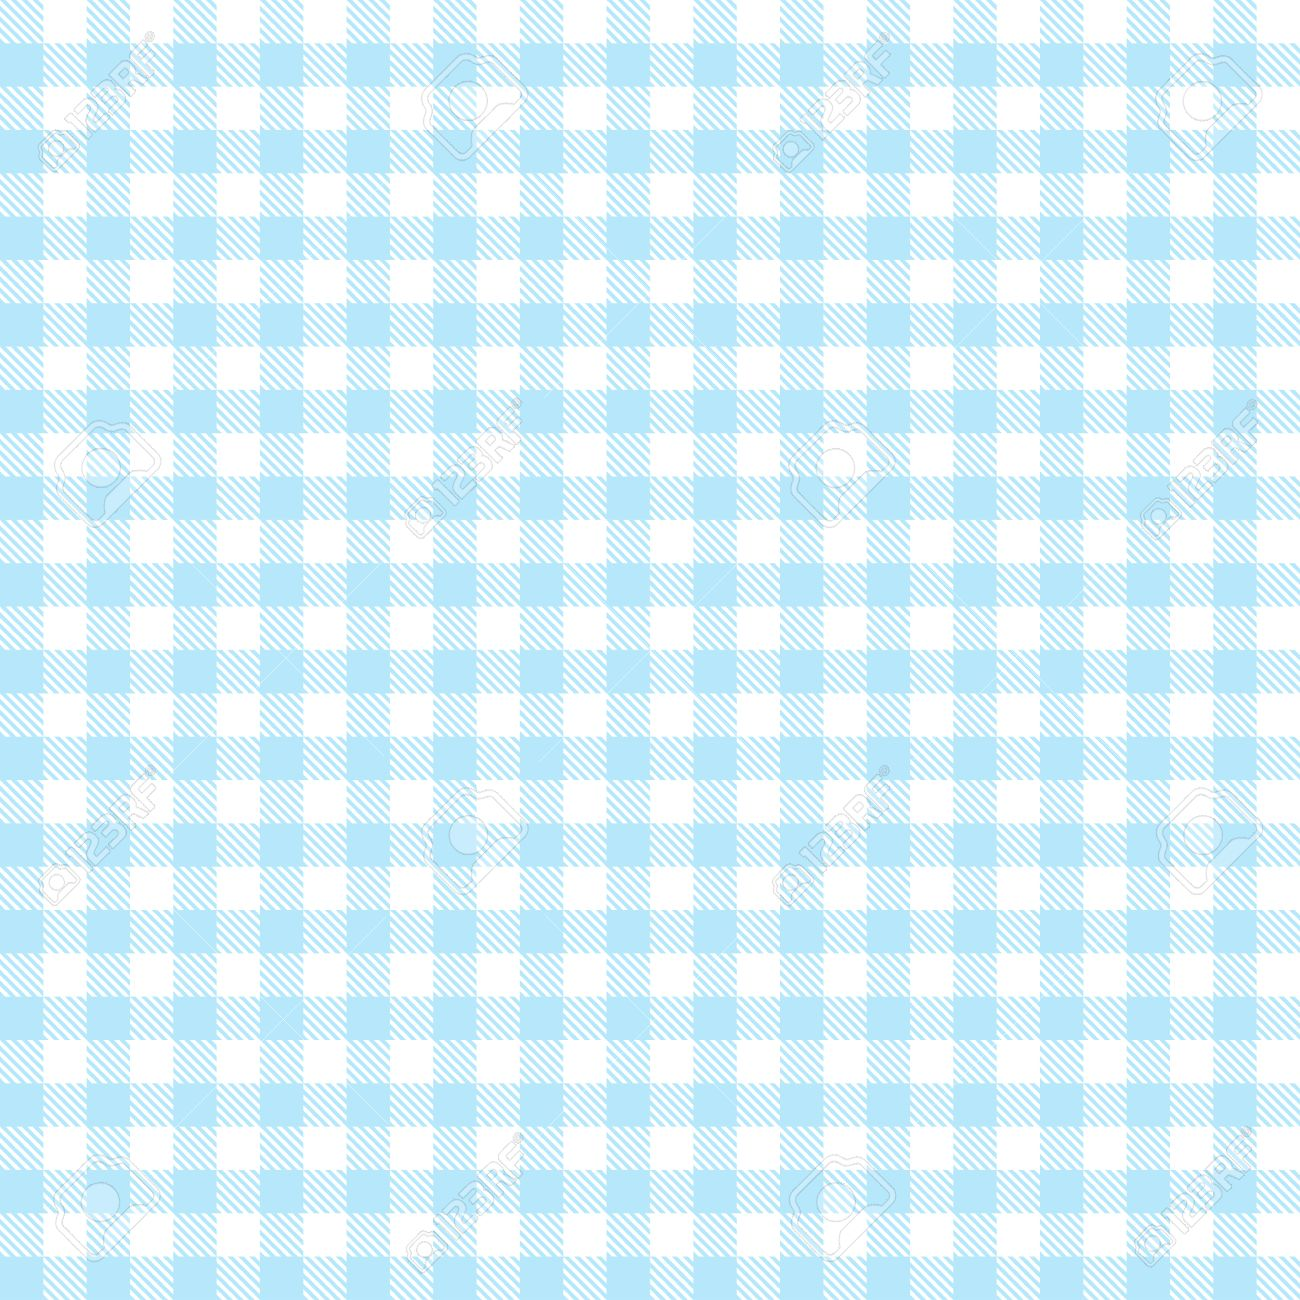 Blue tablecloth background - Checkered Table Cloth Background Light Blue Stock Vector 31486778